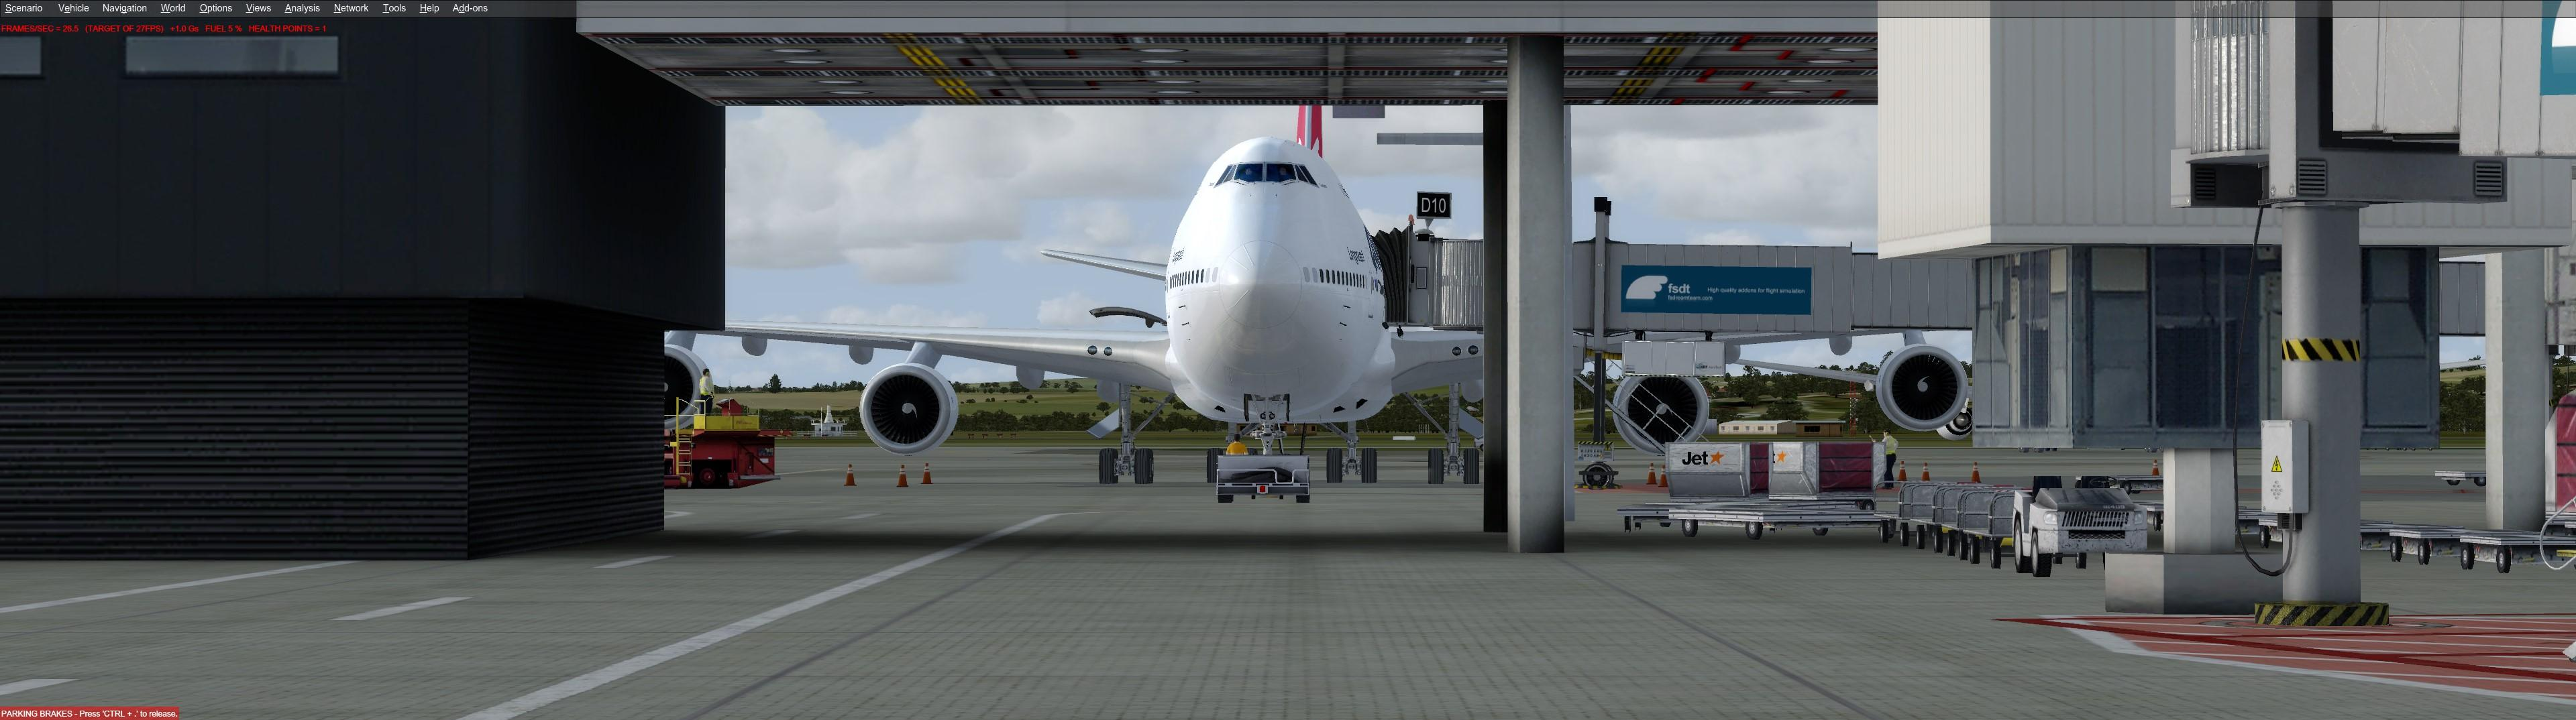 Bruce R's Content - Page 2 - Orbx Community and Support Forums